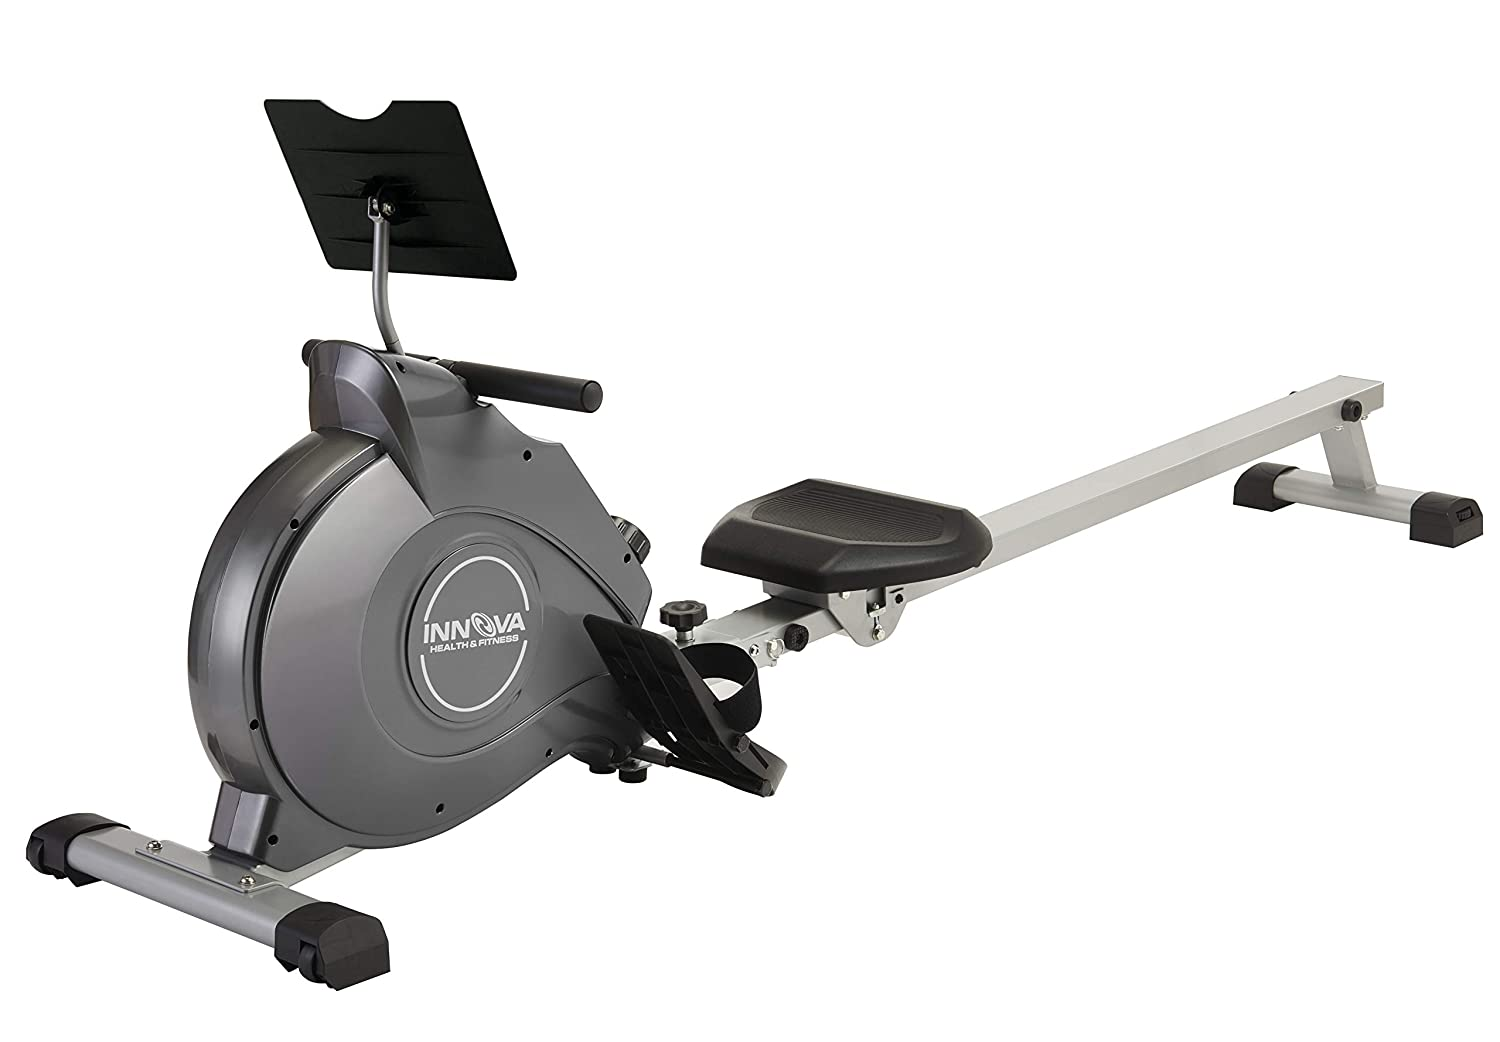 Innova IRM2000 Rowing Machine